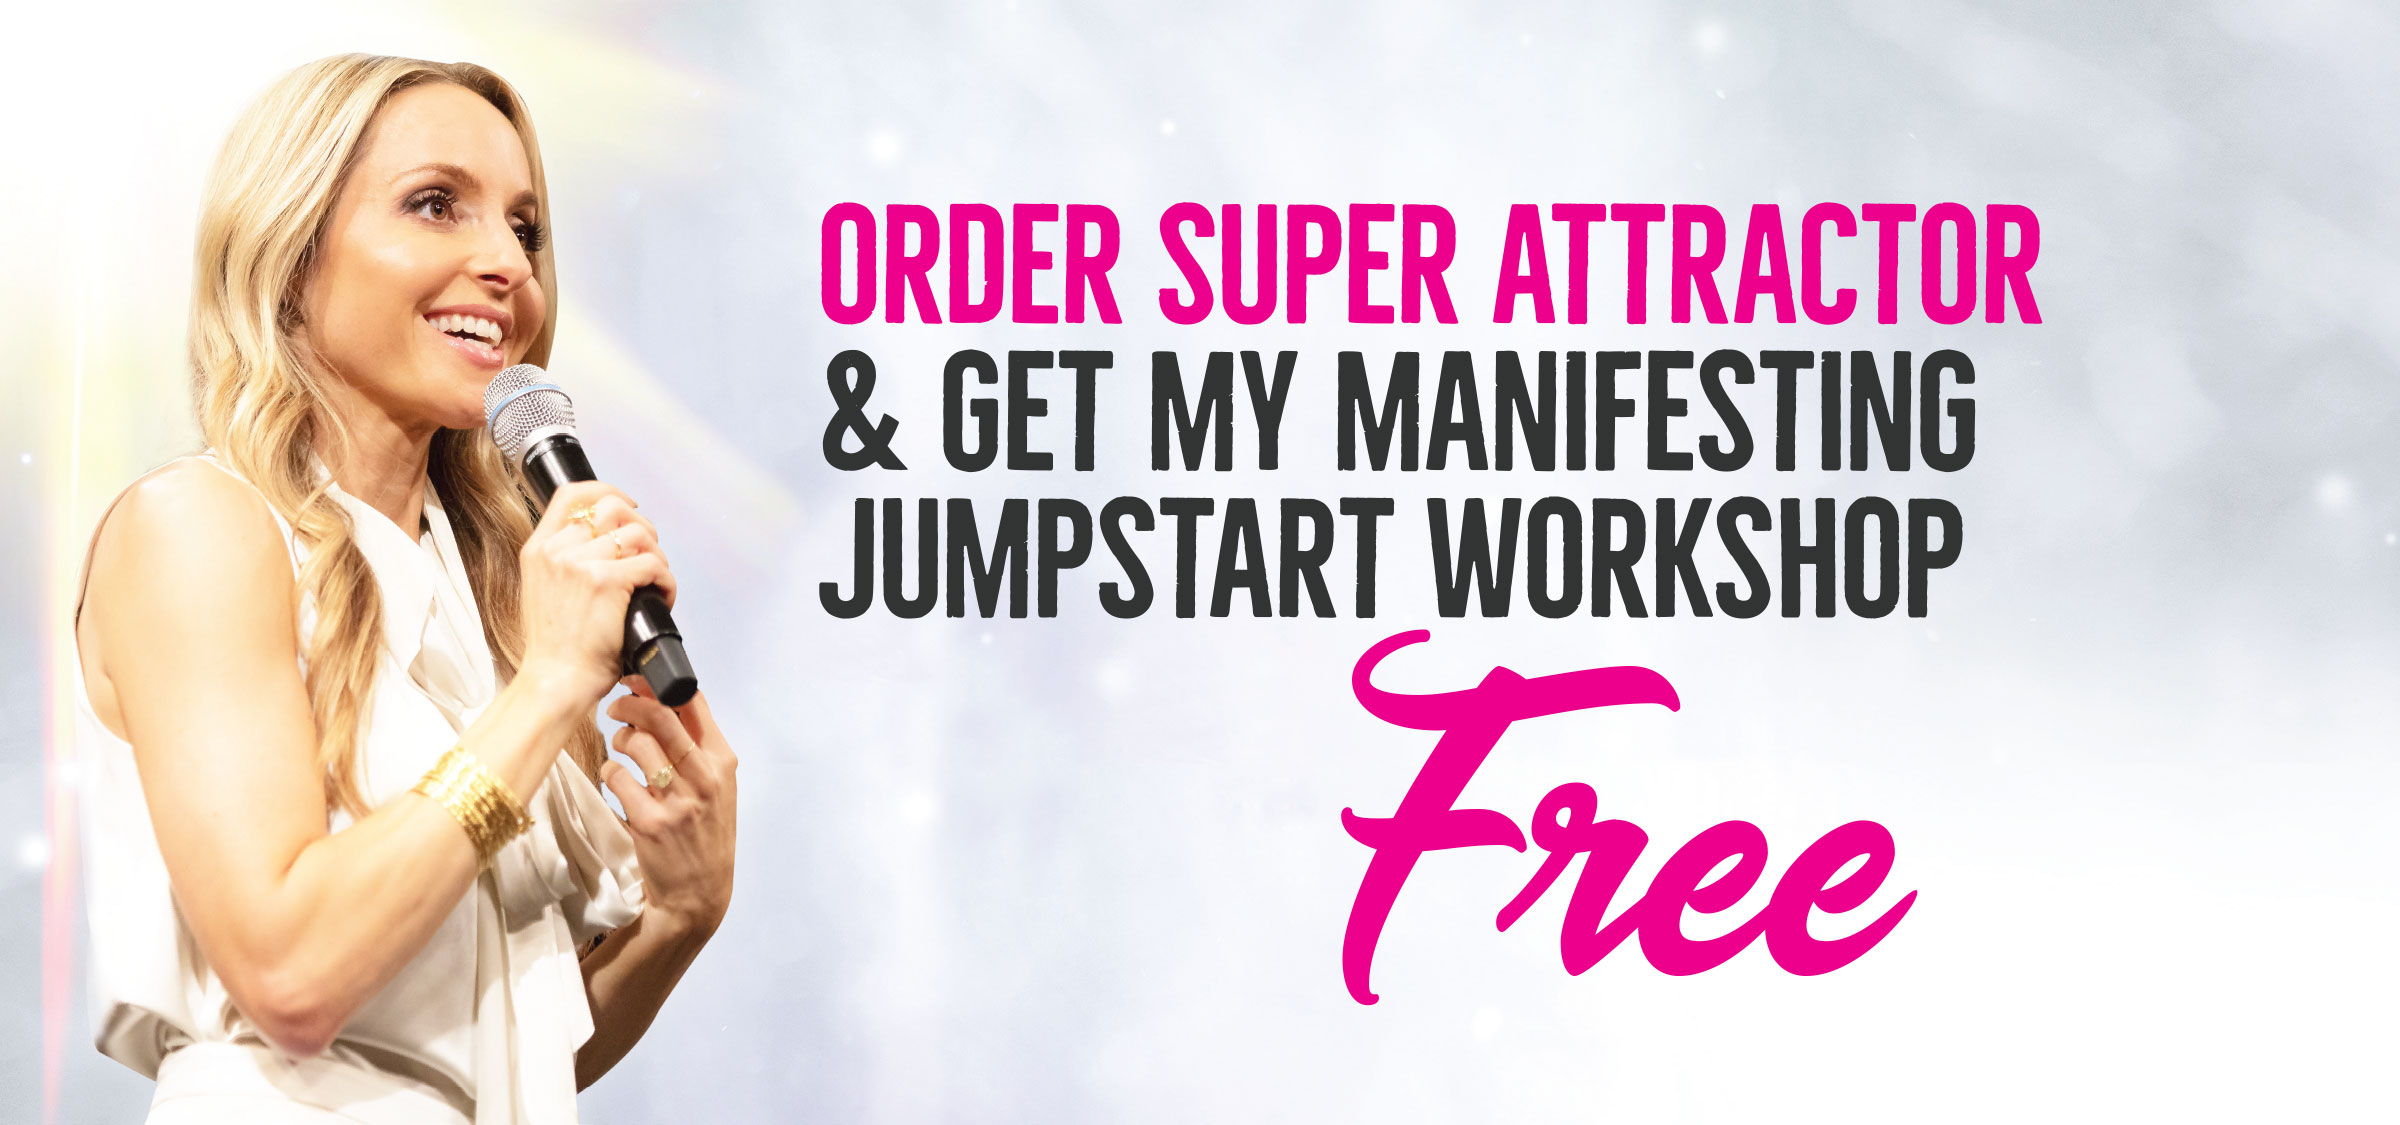 Order Super Attractor by Gabby Bernstein to get the 2-hour Manifesting Jumpstart Workshop free